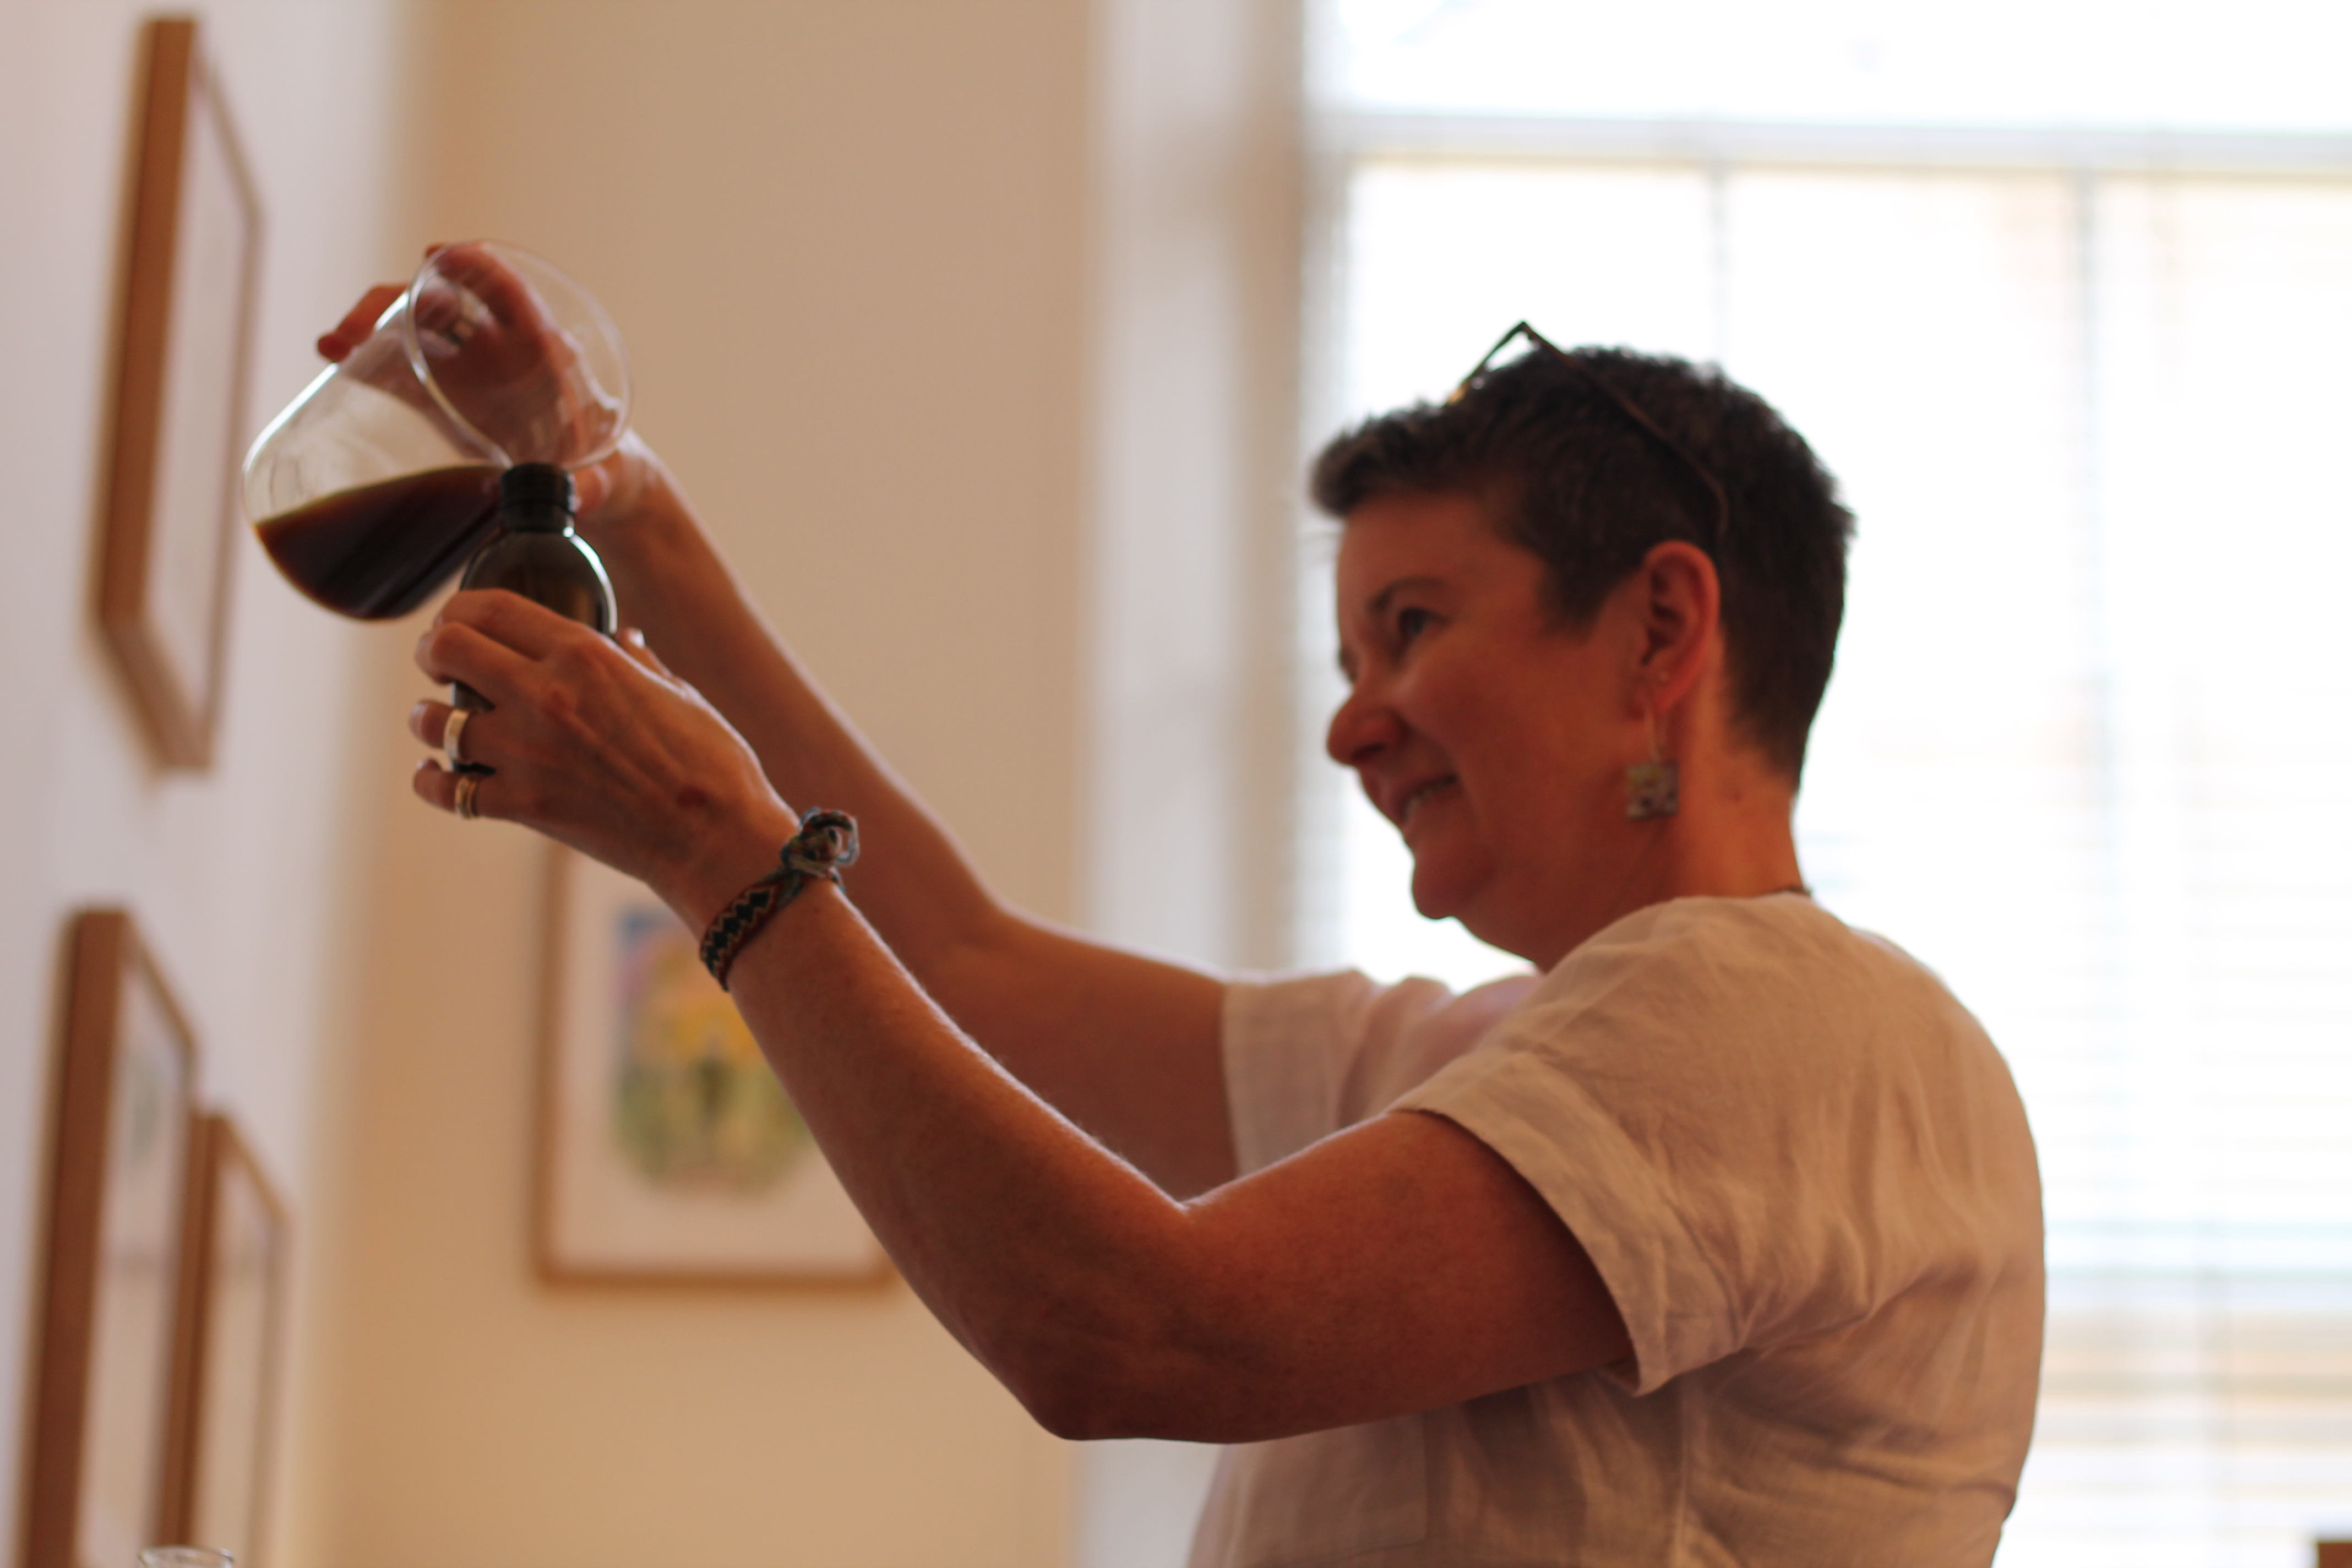 A photo of a lady pouring liquid into a bottle.